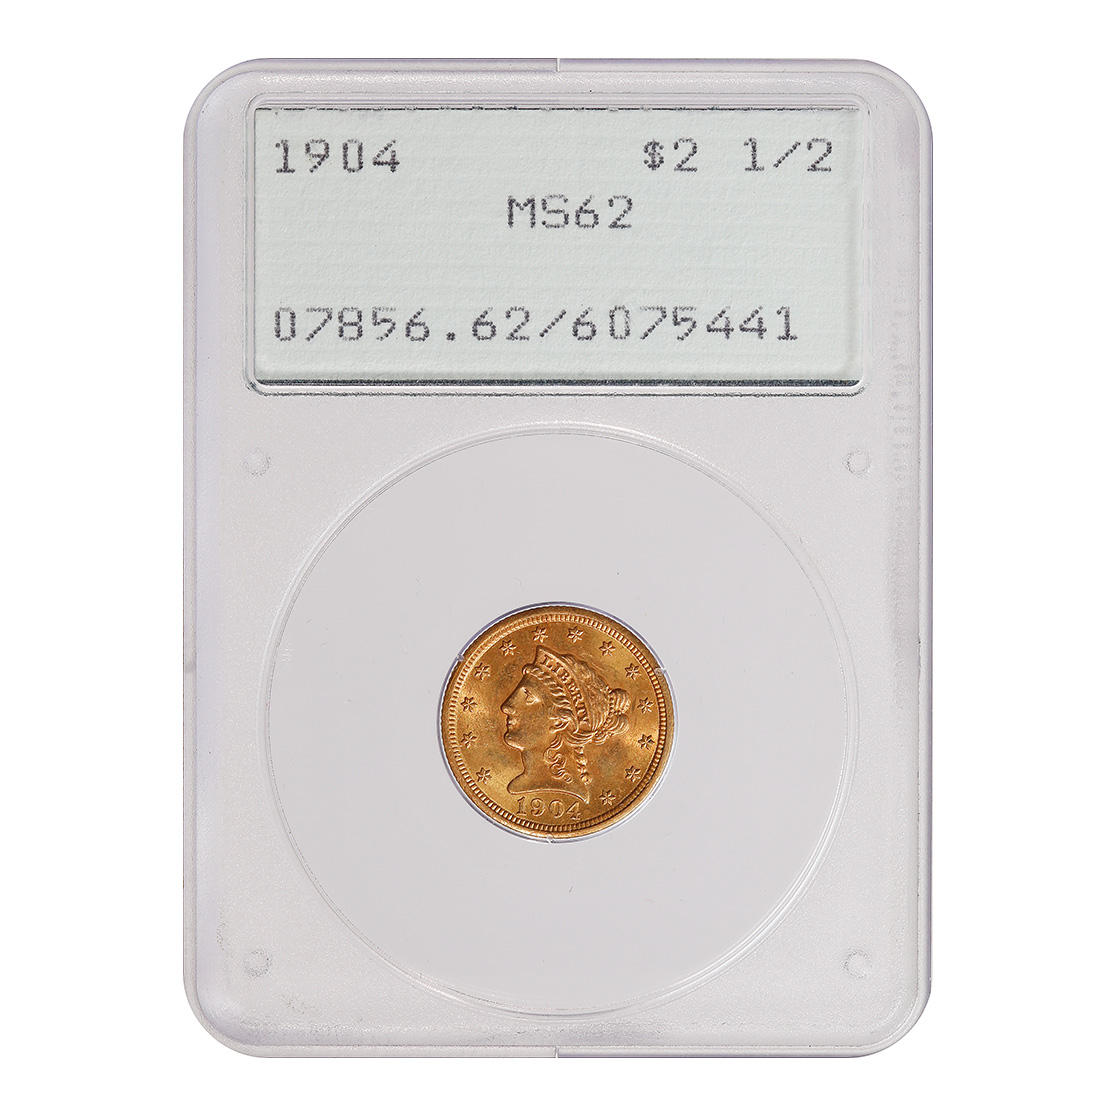 Certified $2.5 Gold Liberty 1904 MS62 PCGS Rattler